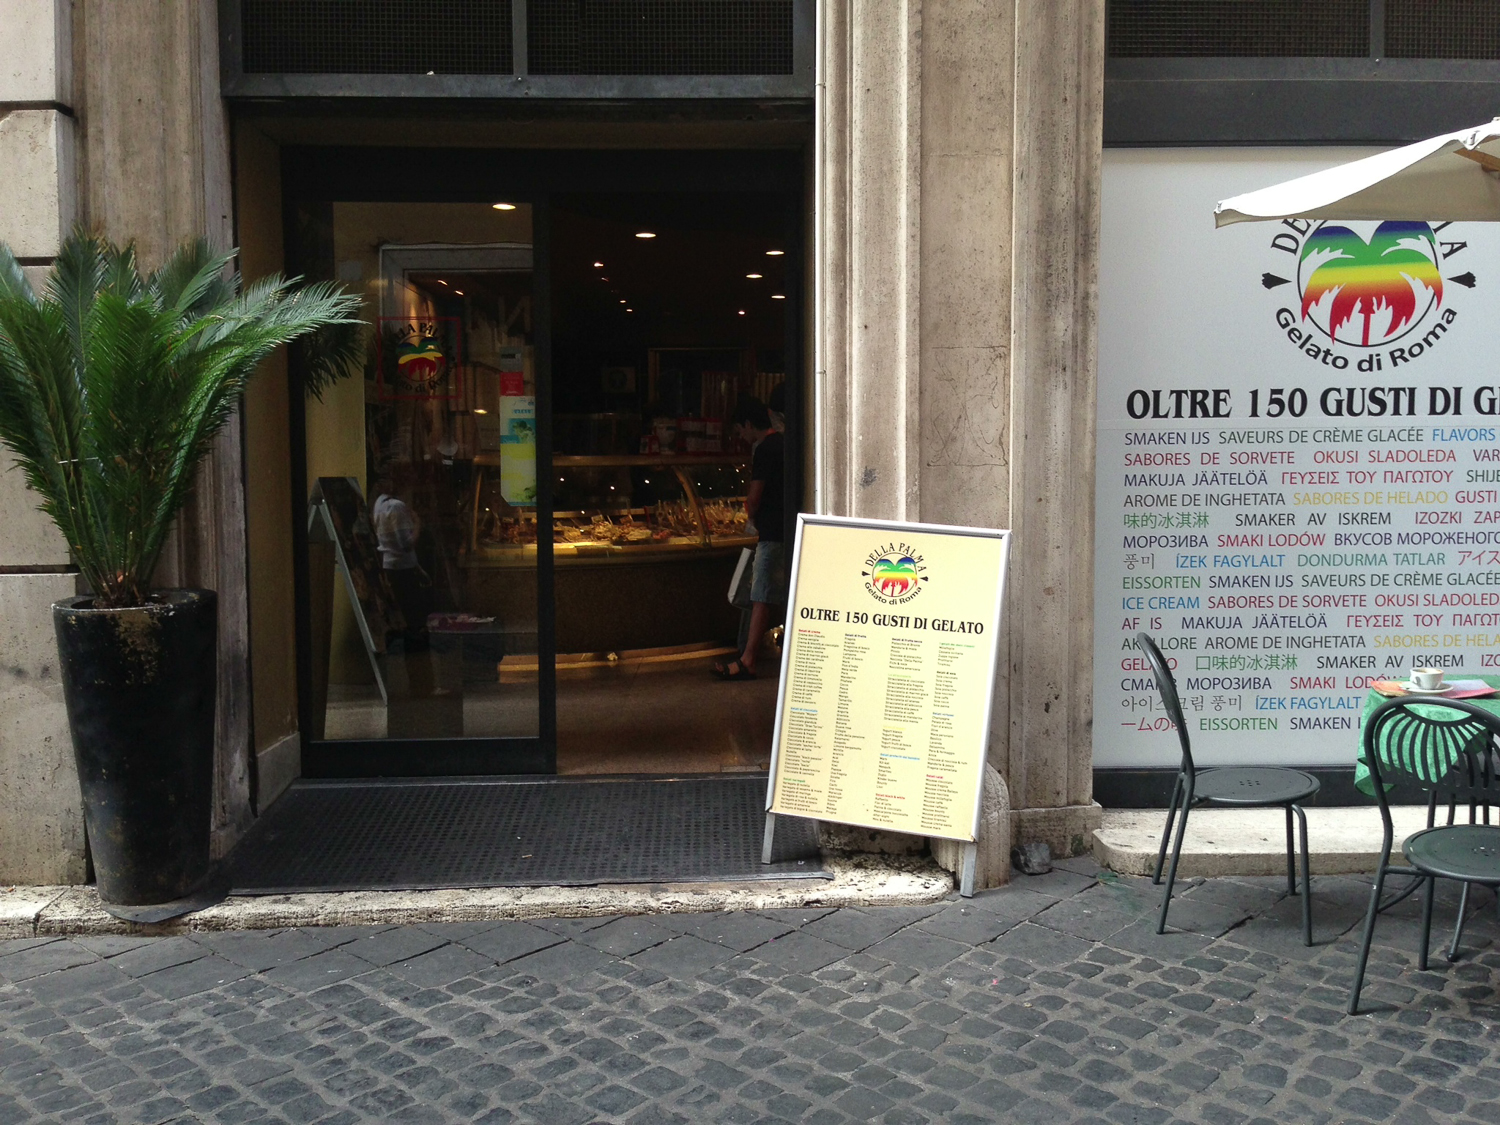 Vegan in Rome